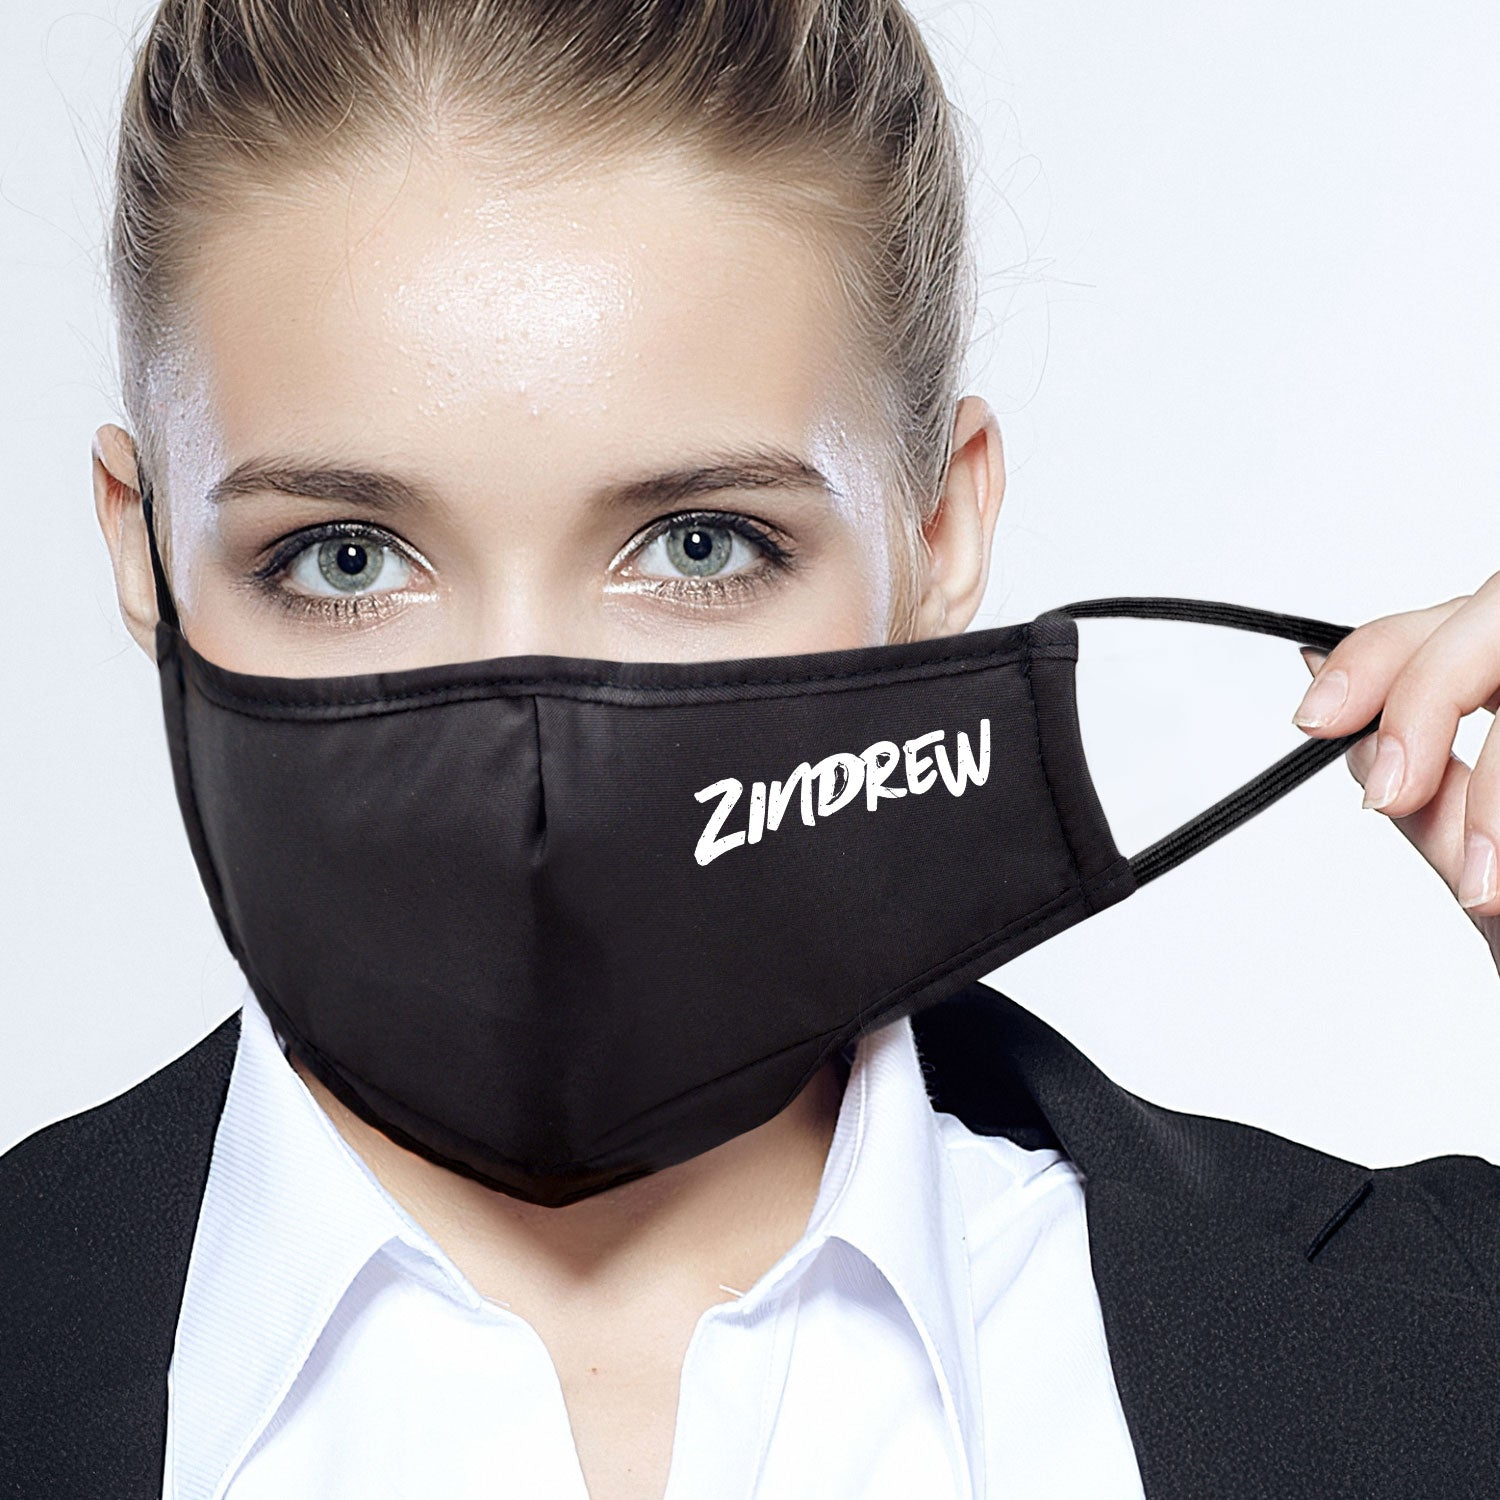 Zindrew Face Mask w/ Filter